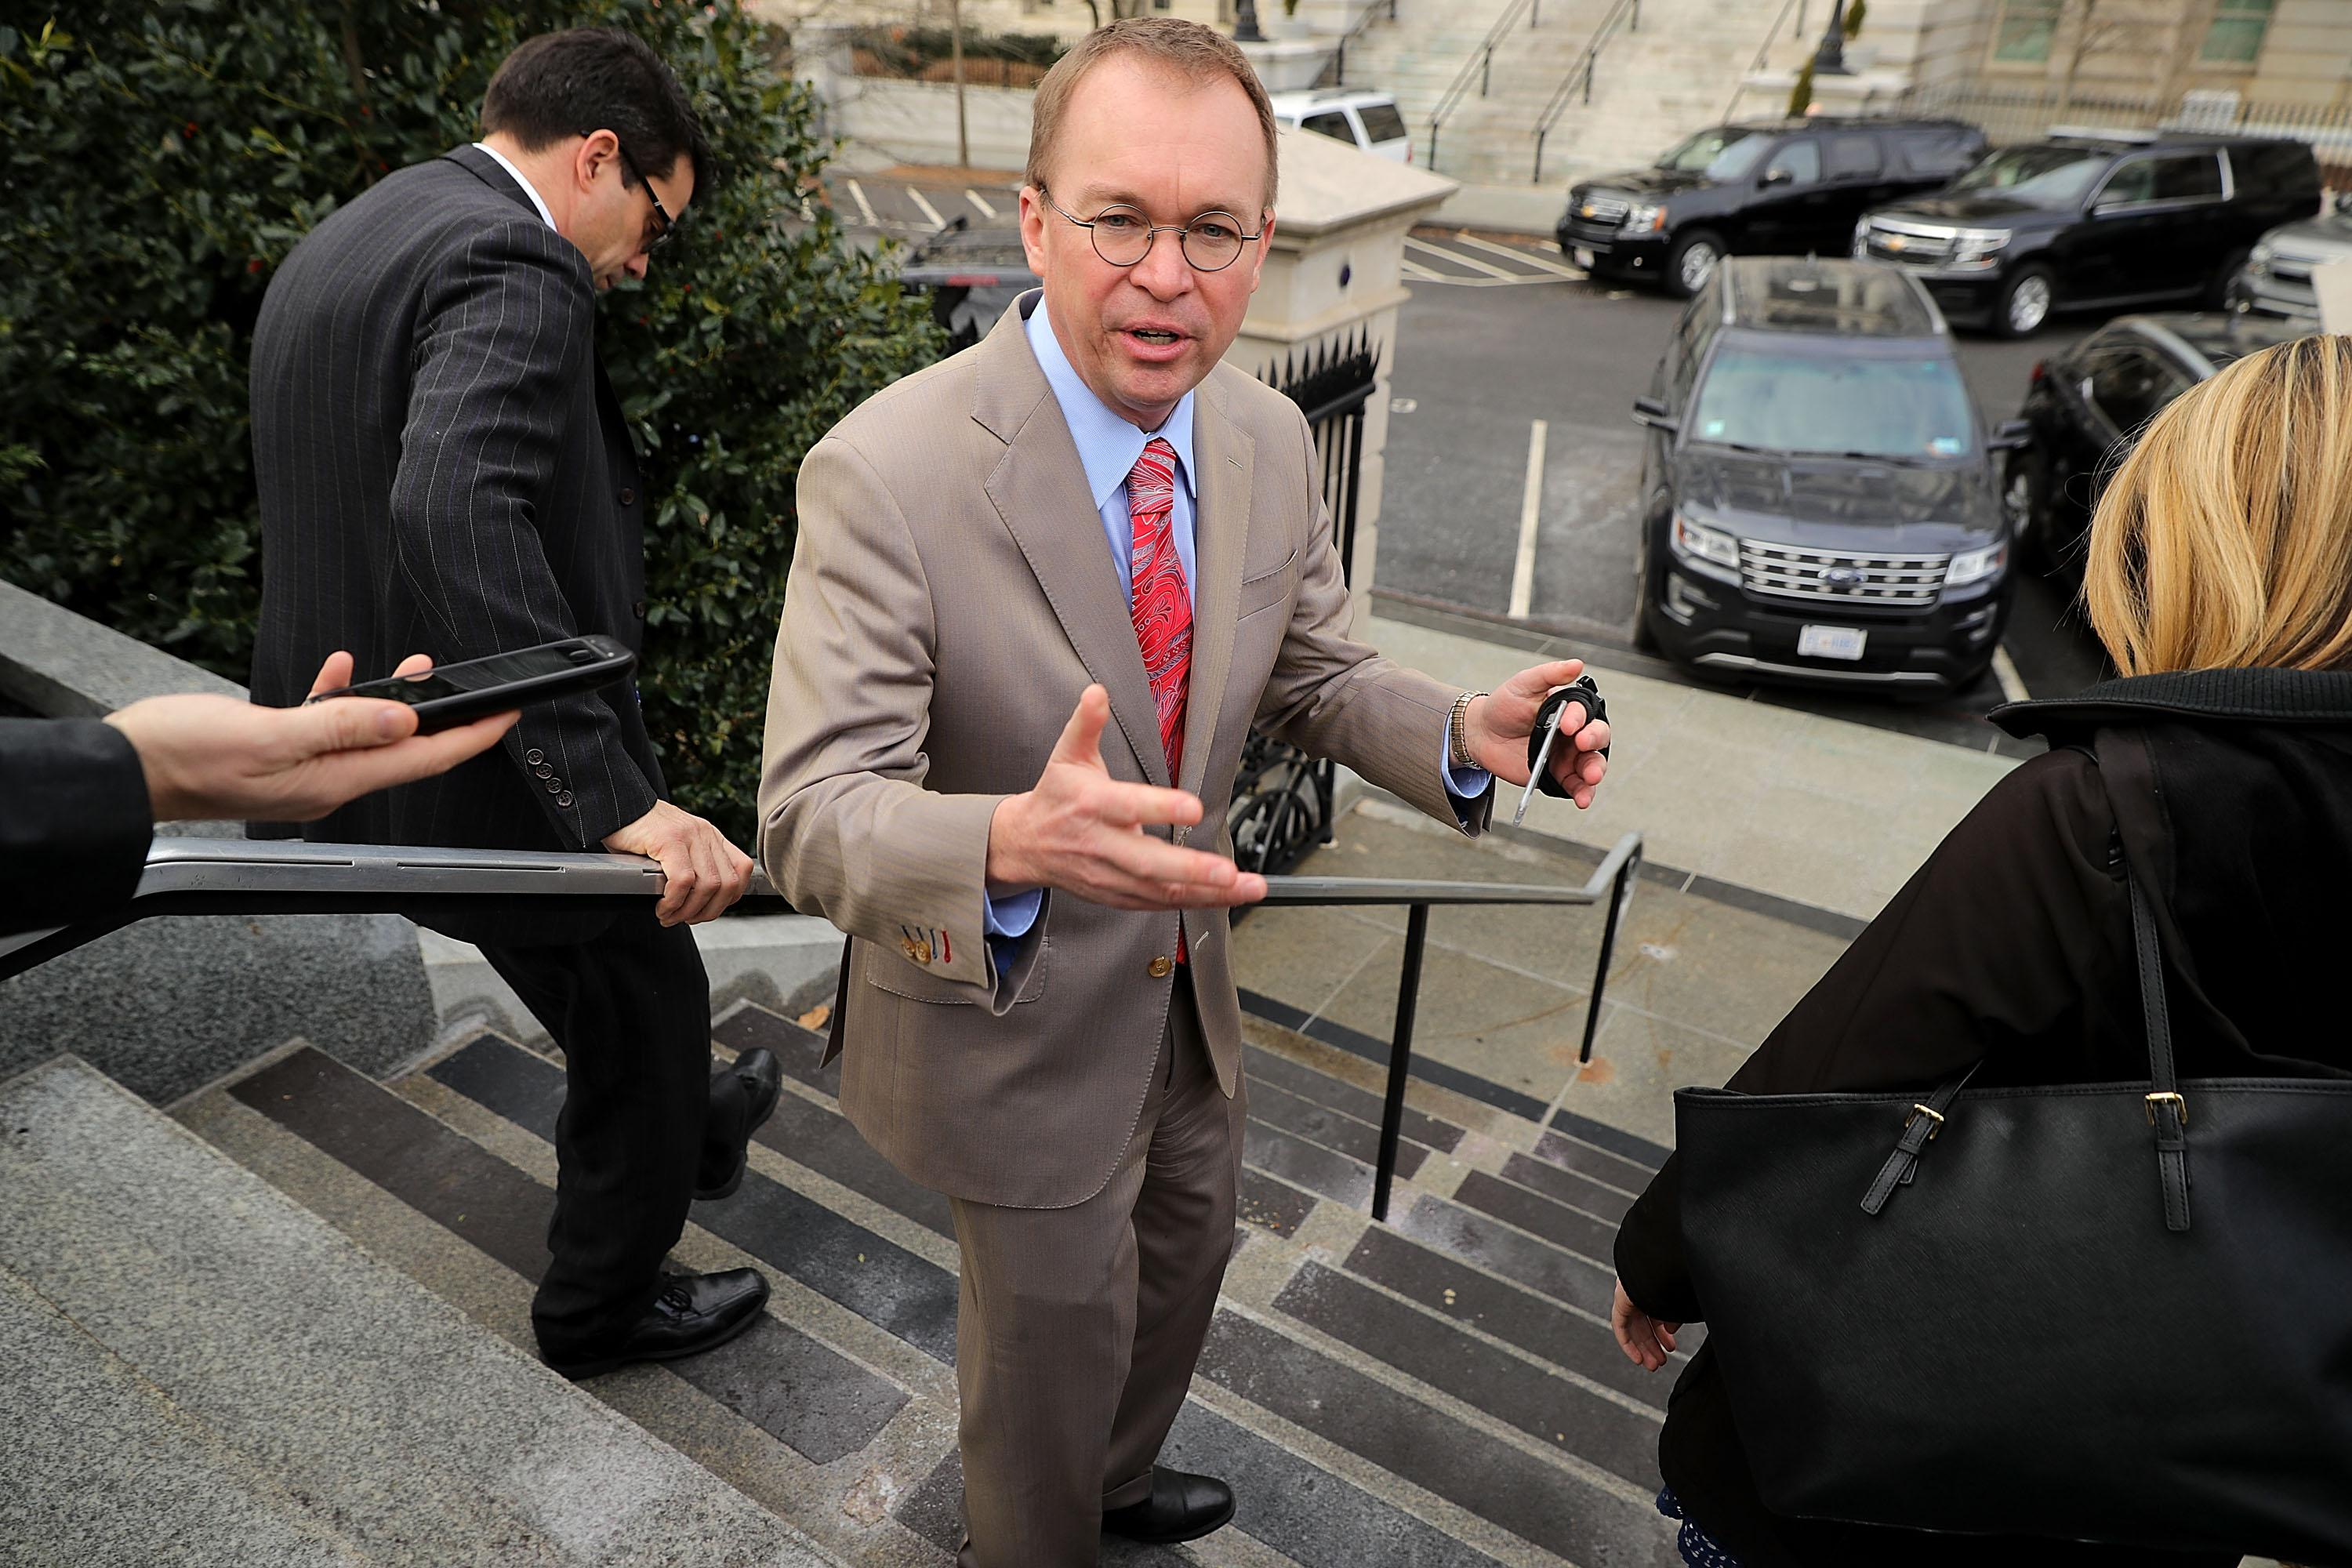 WASHINGTON, DC - JANUARY 22:  Office of Management and Budget Director Mick Mulvaney talks briefly to reporters about the ongoing partial federal government shutdown outside the White House January 22, 2018 in Washington, DC. Lawmakers and the White House continue to negotiate an end to the shutdown with a vote scheduled for noon in the U.S. Senate.  (Photo by Chip Somodevilla/Getty Images)